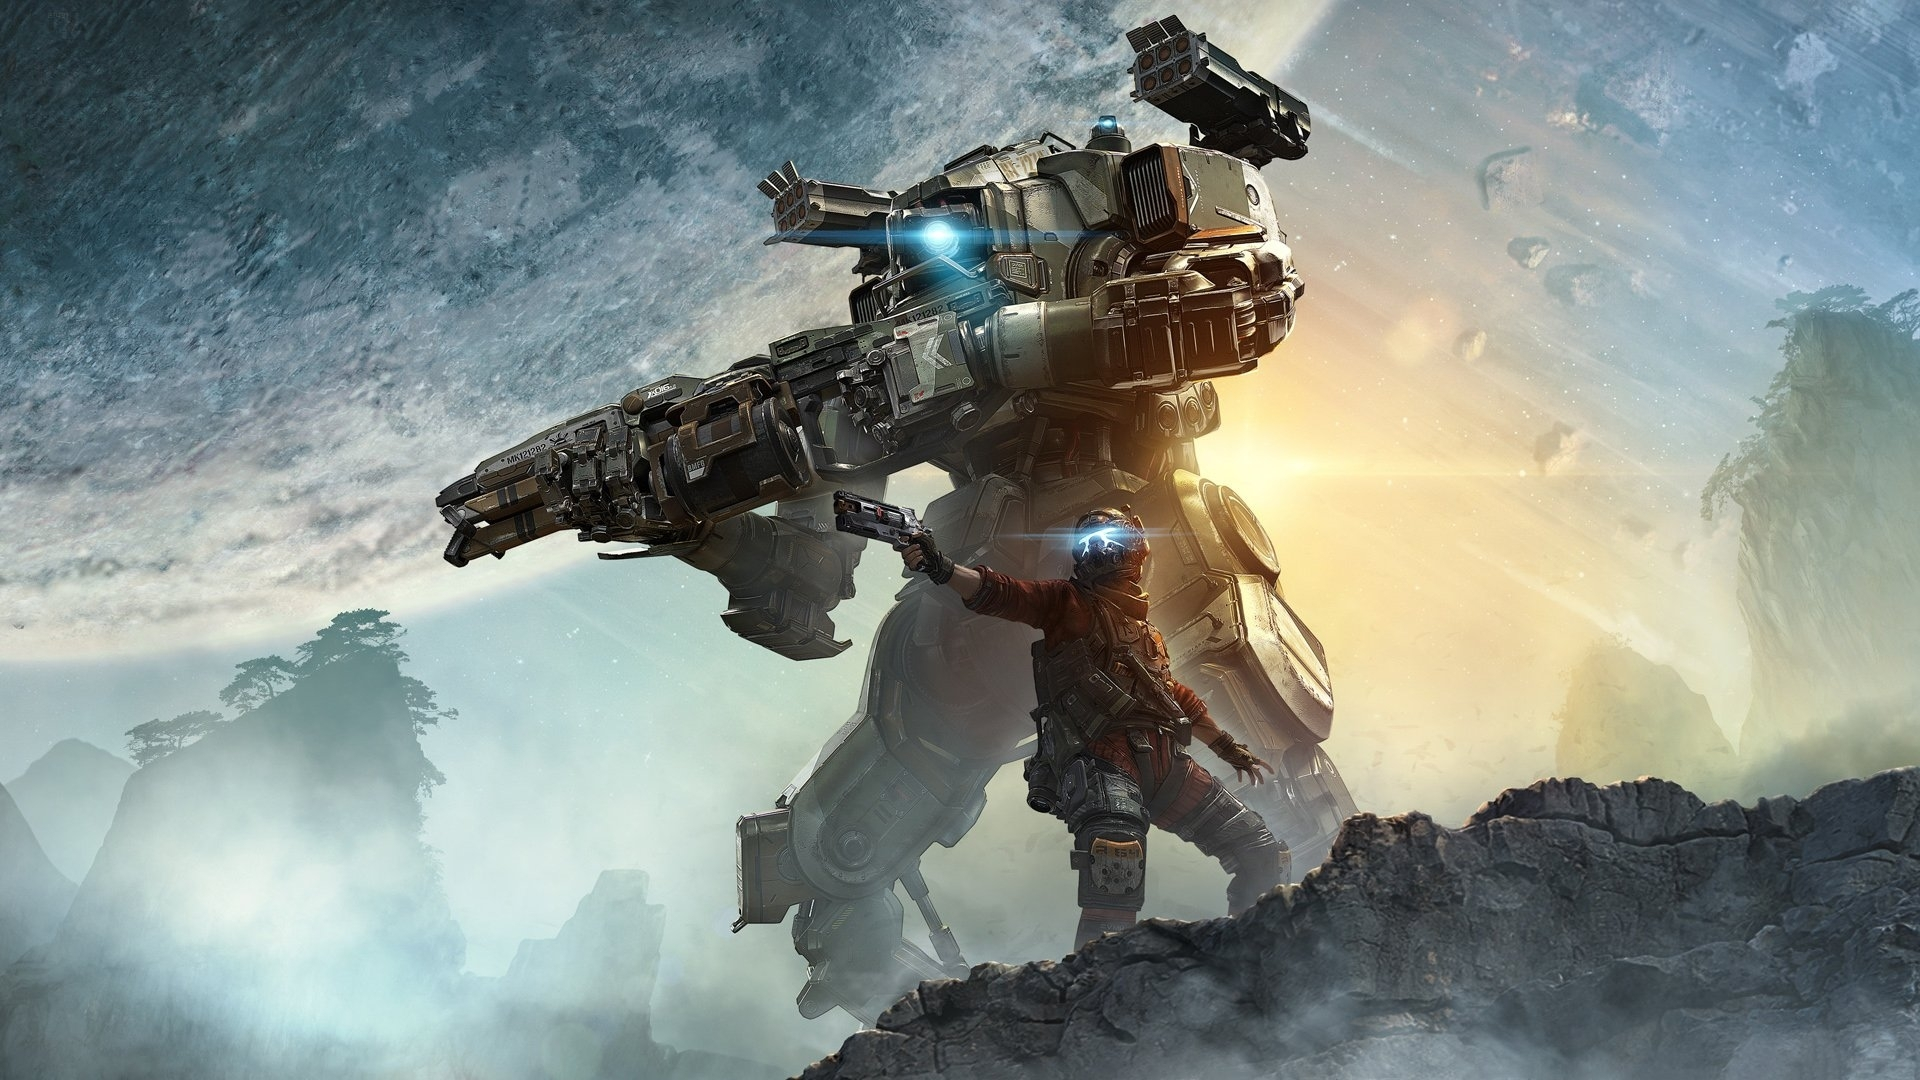 124 titanfall hd wallpapers | background images - wallpaper abyss